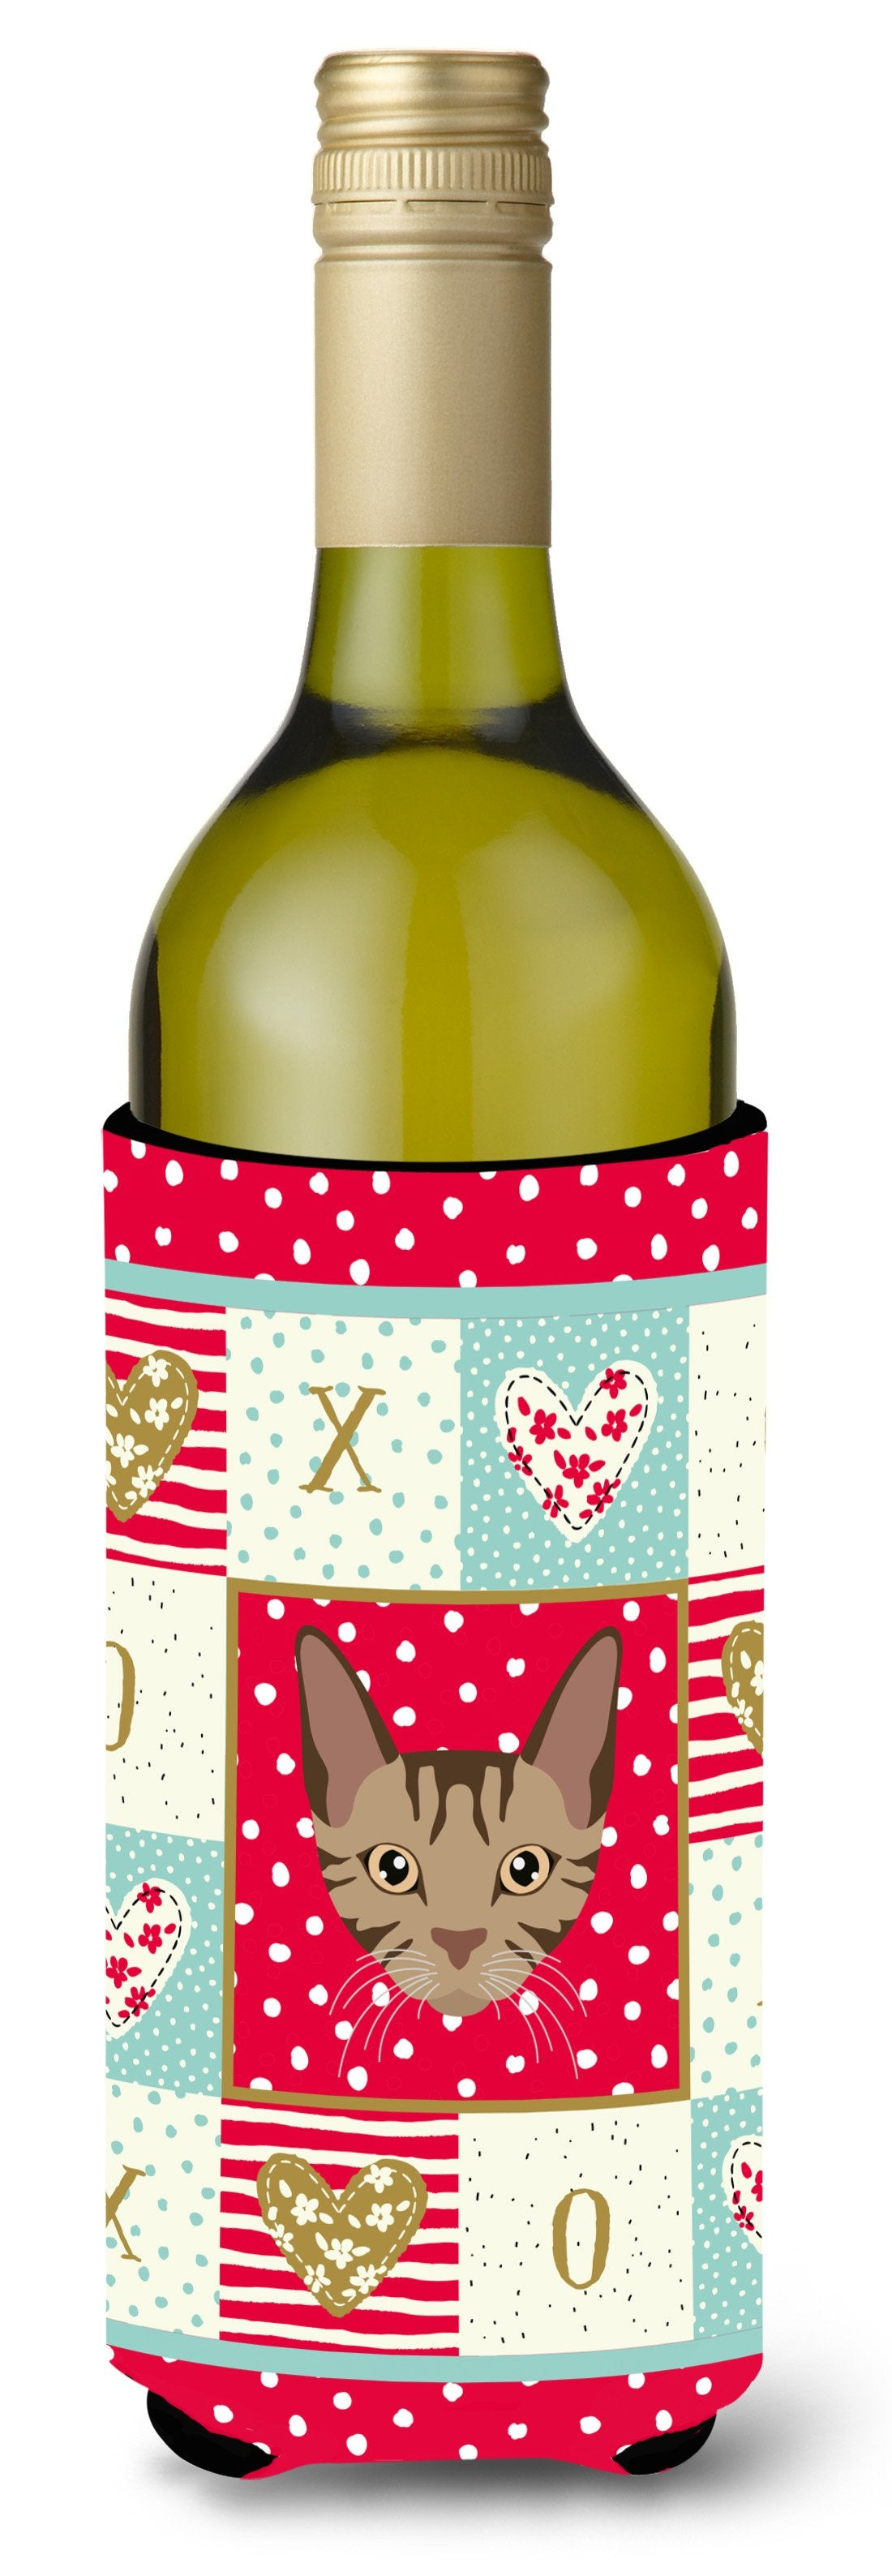 Sokoke Cat Wine Bottle Beverage Insulator Hugger CK5168LITERK by Caroline's Treasures